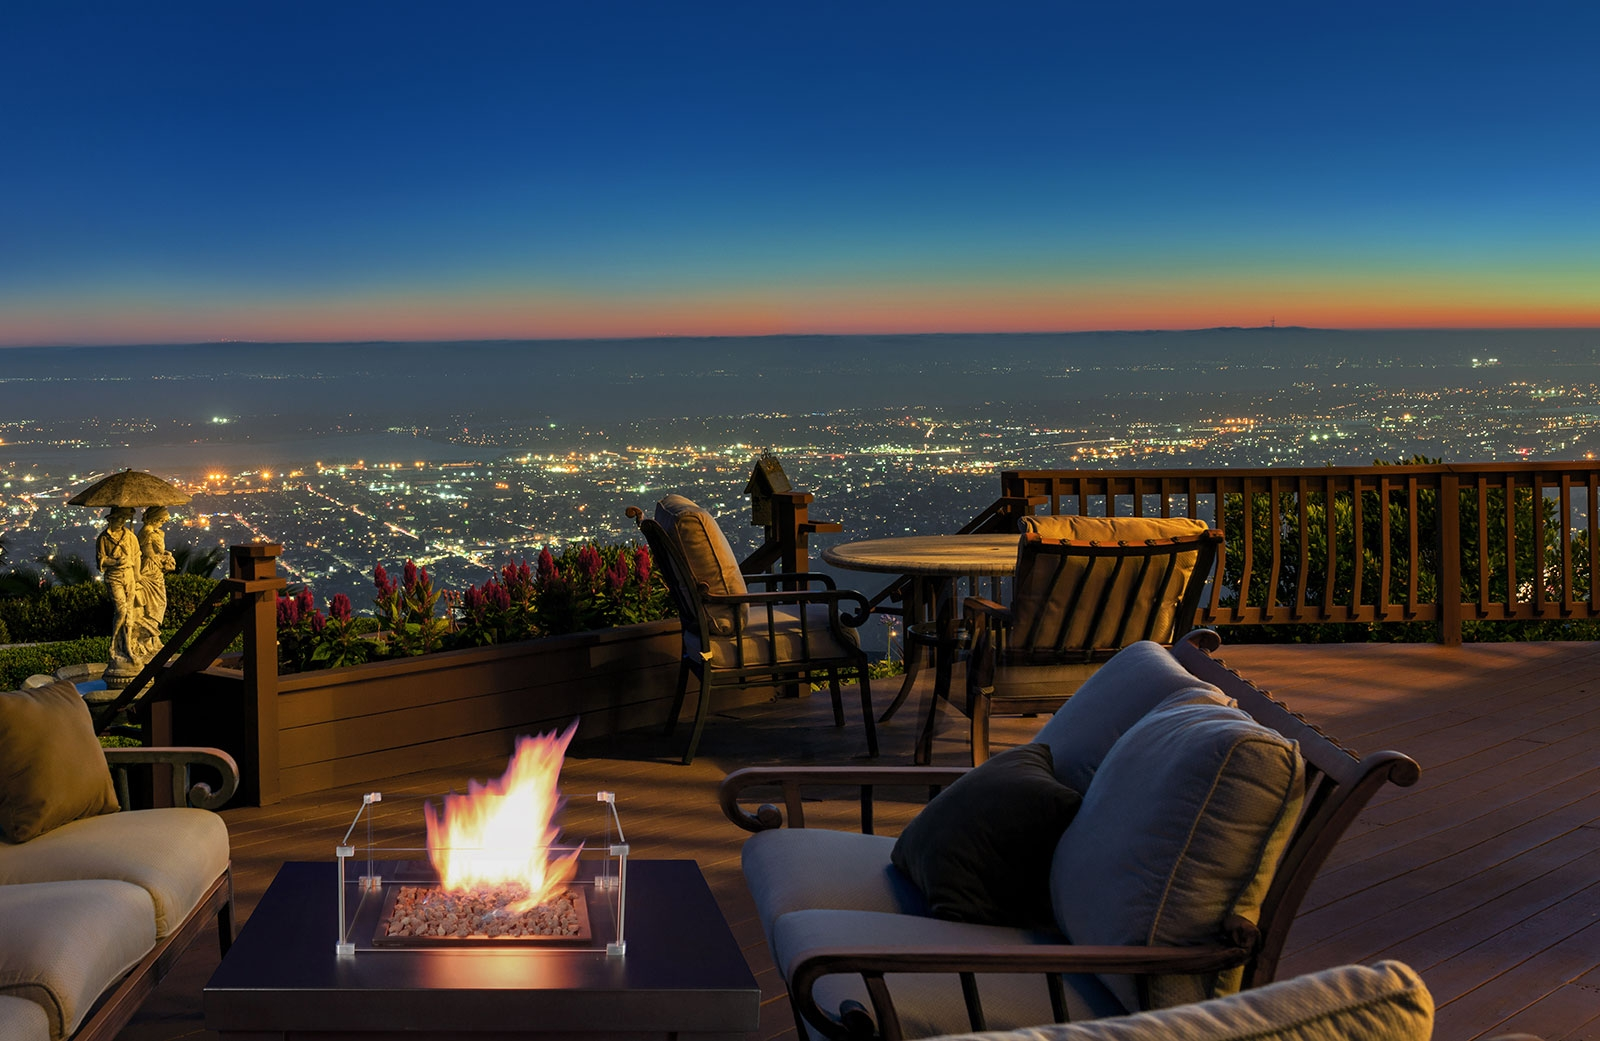 Outdoor fires and heaters